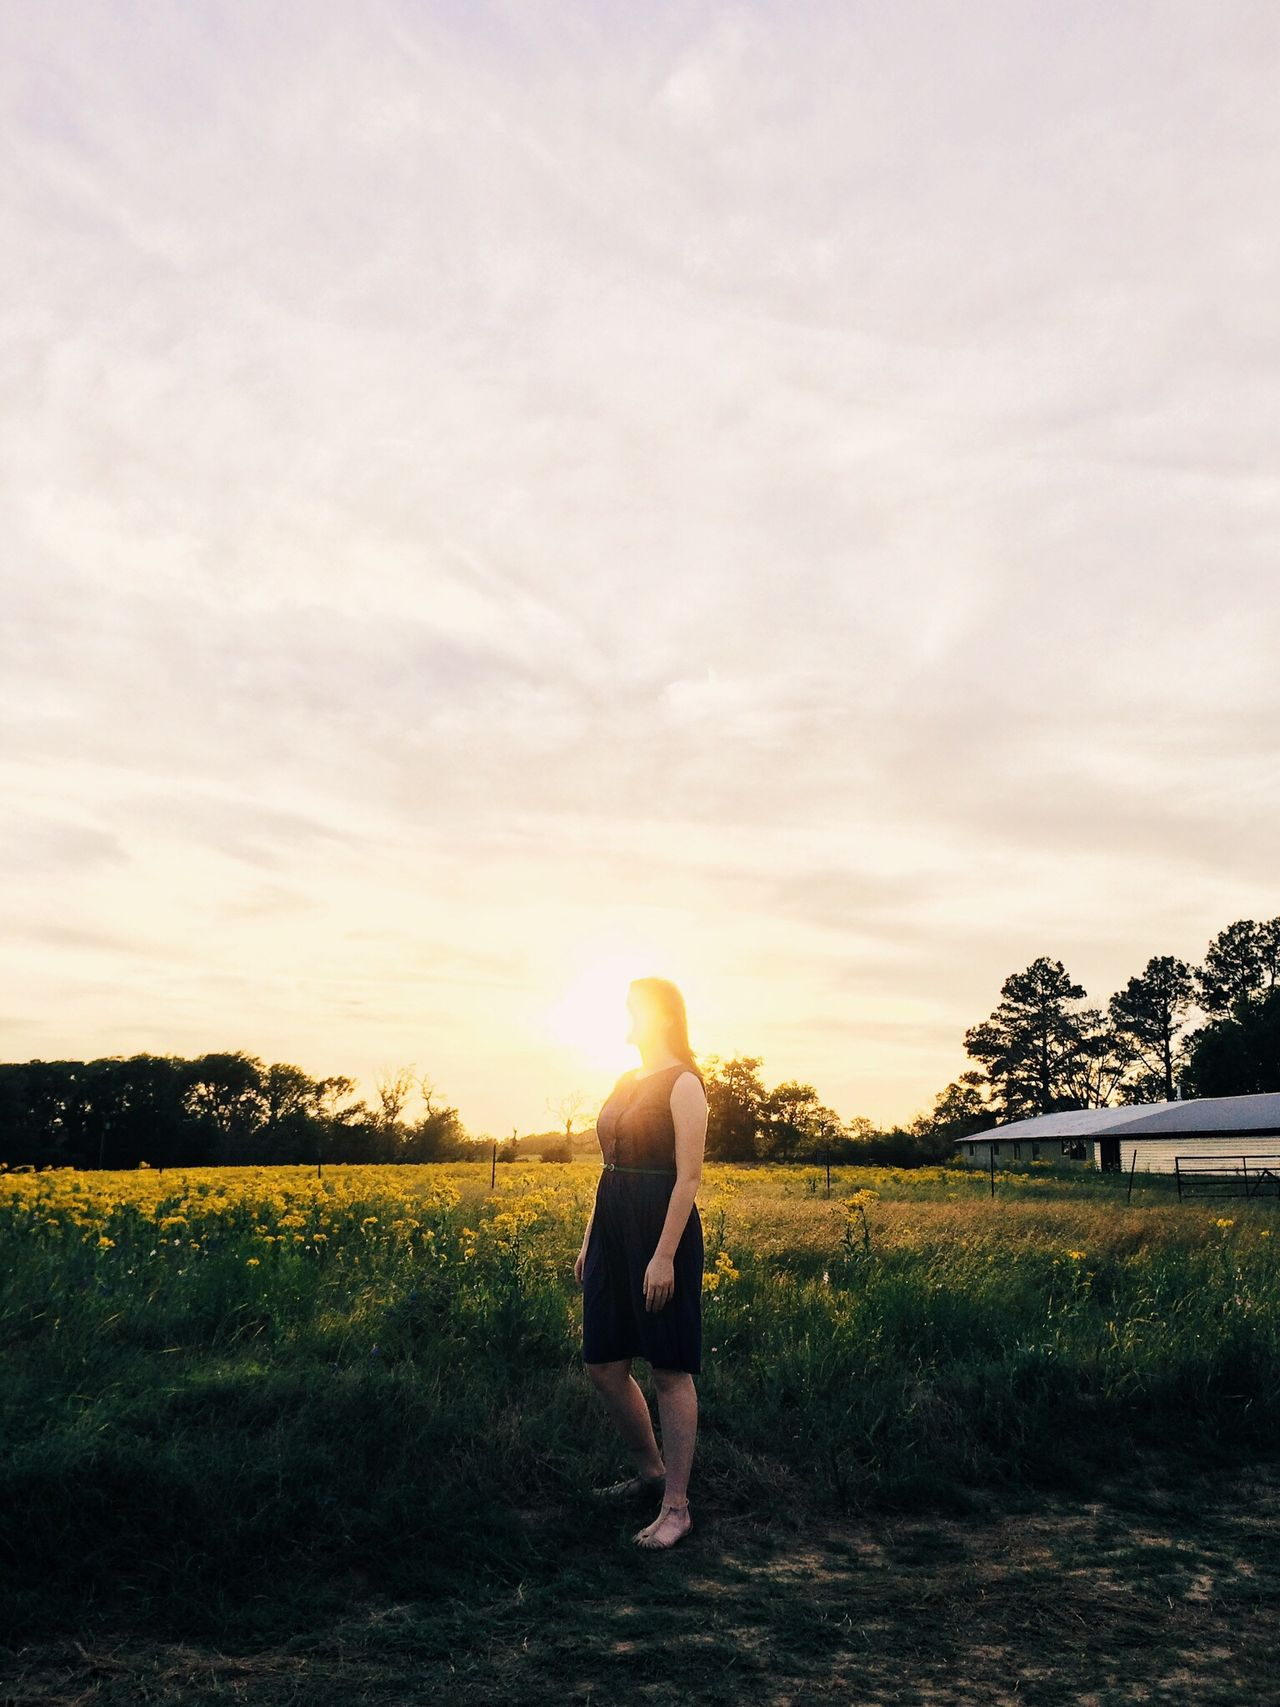 Woman standing on grassy field against cloudy sky during sunset